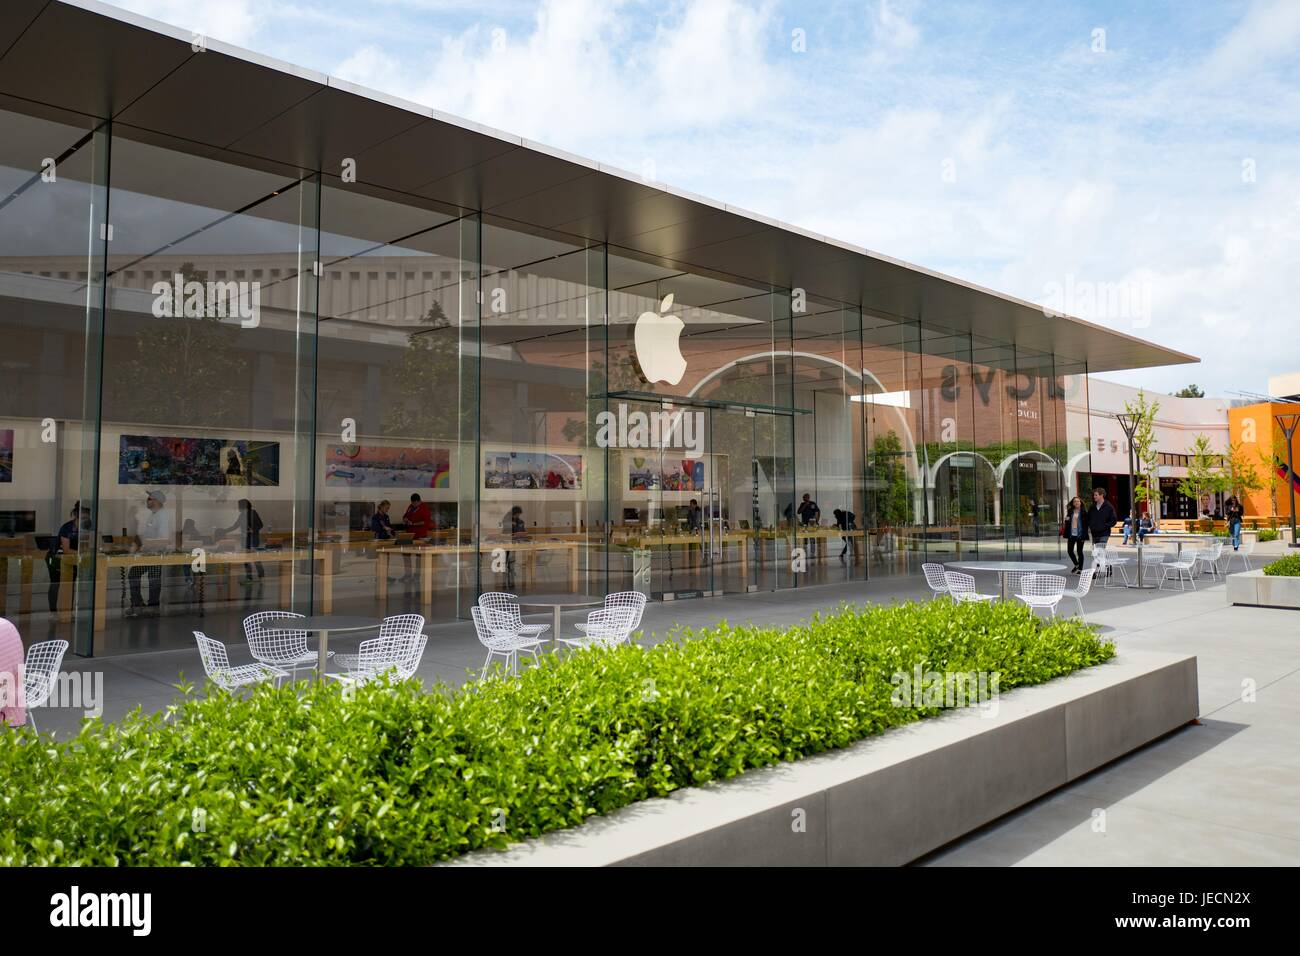 Glass facade of the Apple store at the Stanford Shopping Center, an upscale outdoor shopping mall in the Silicon - Stock Image